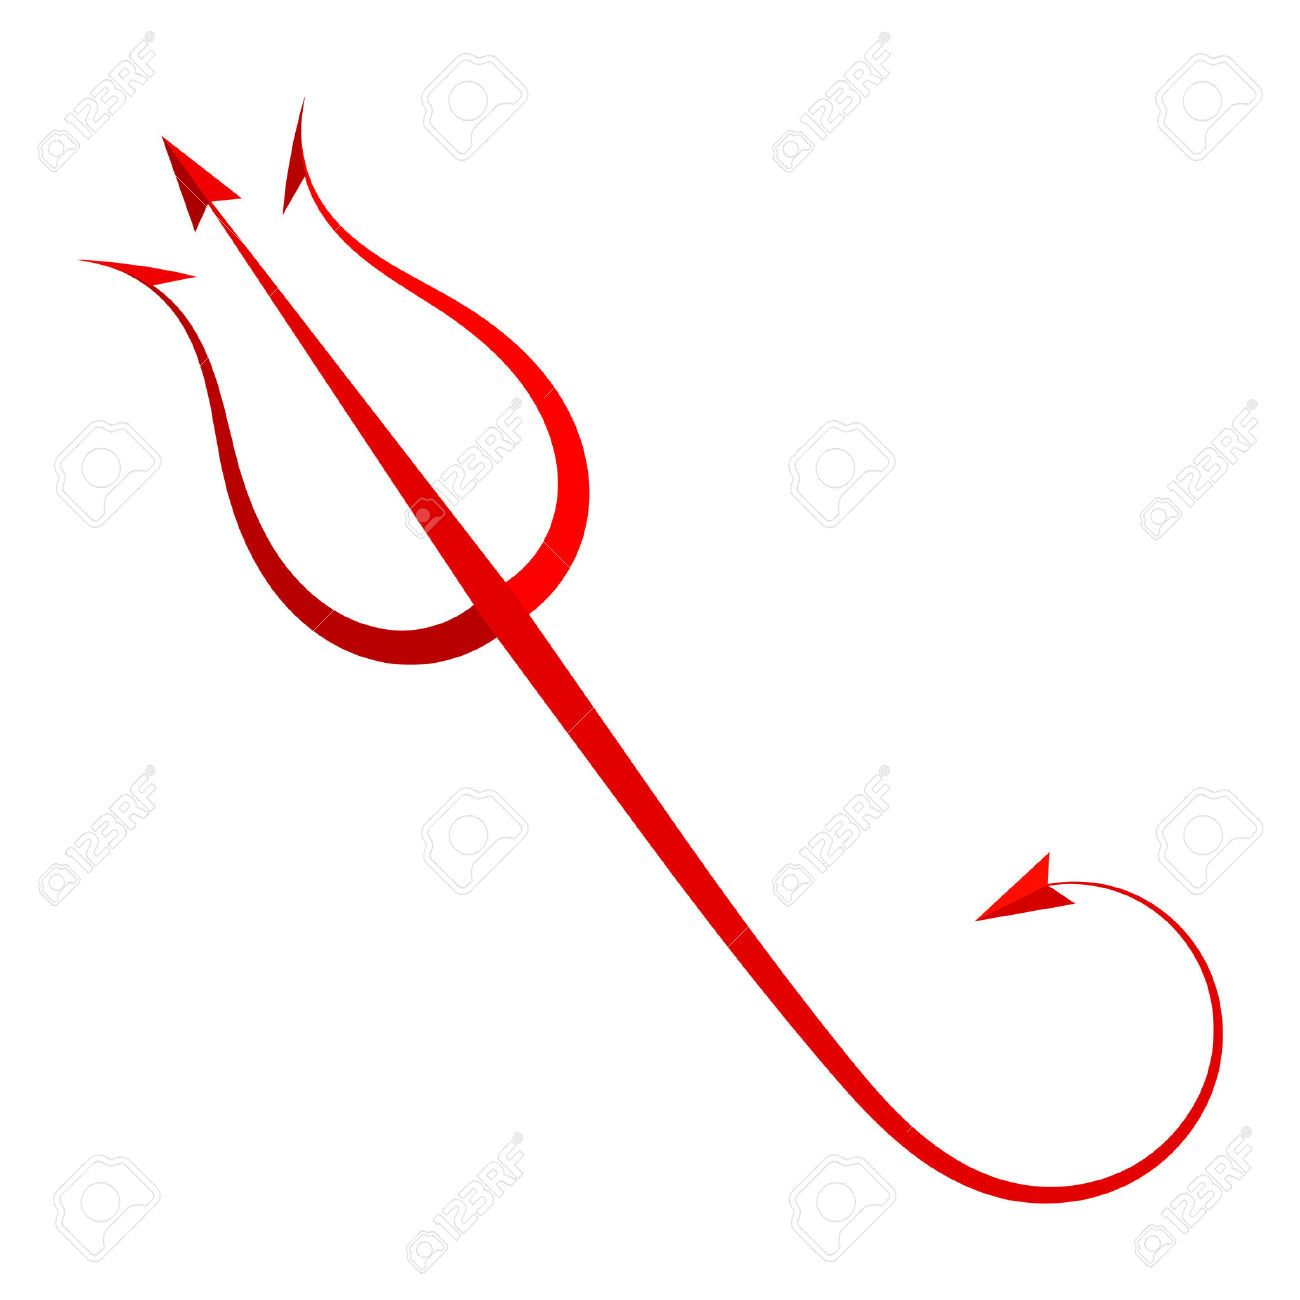 red devil hindu dating site Hindu pronunciation are now flowing red with the blood of cows slaughtered by miscreants, earth is no longer the producer of wealth, nor does indra give timely rains.